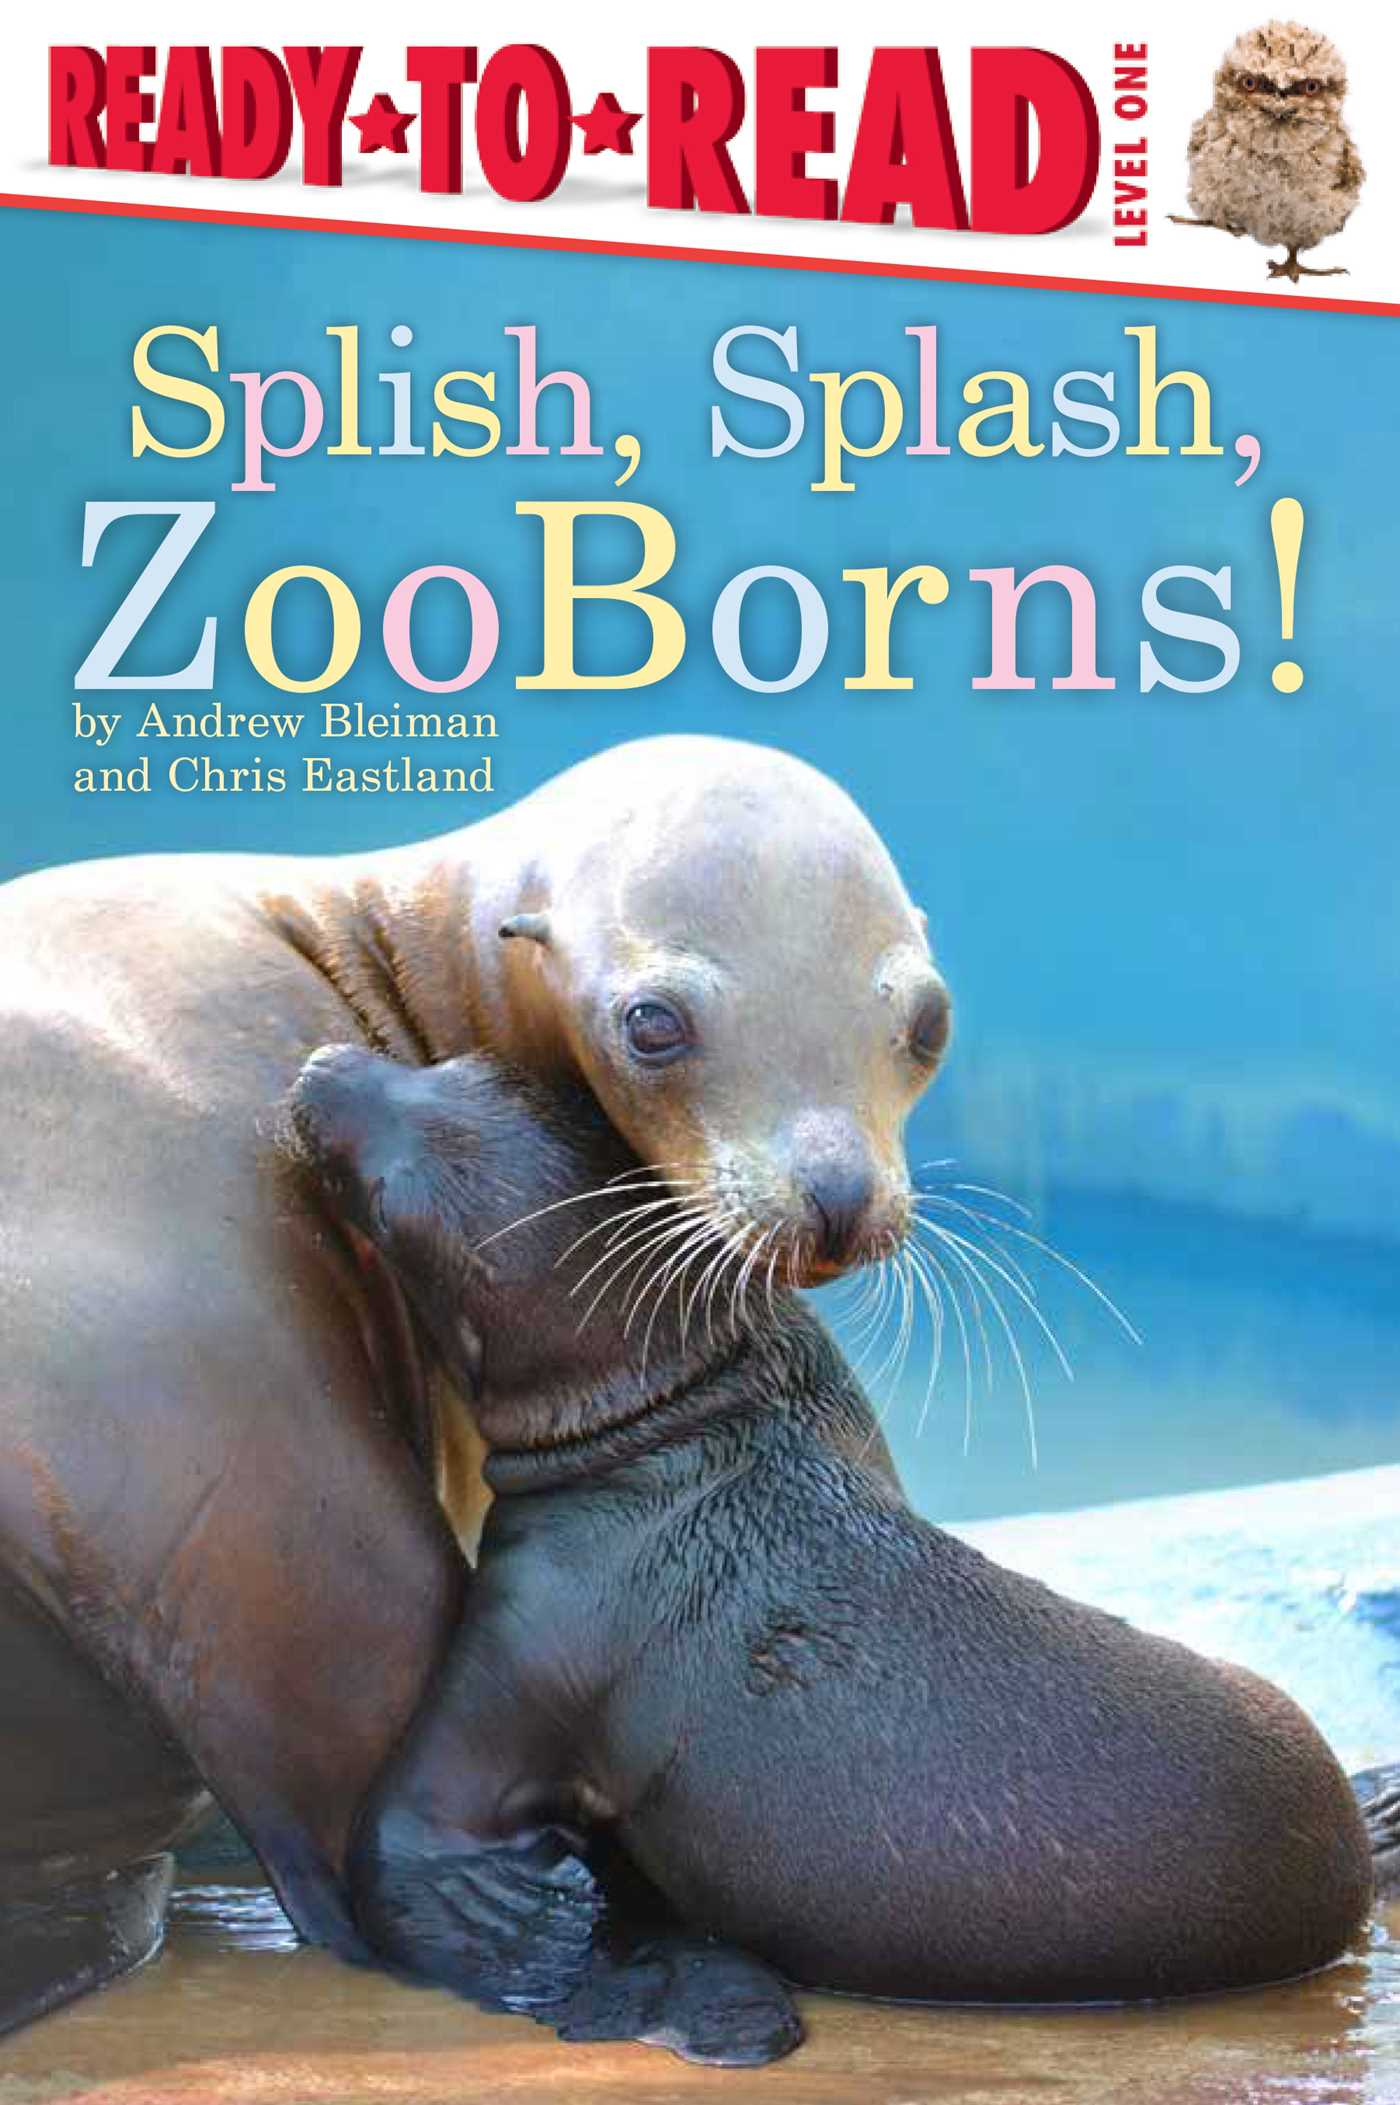 Splish splash zooborns 9781481430975 hr